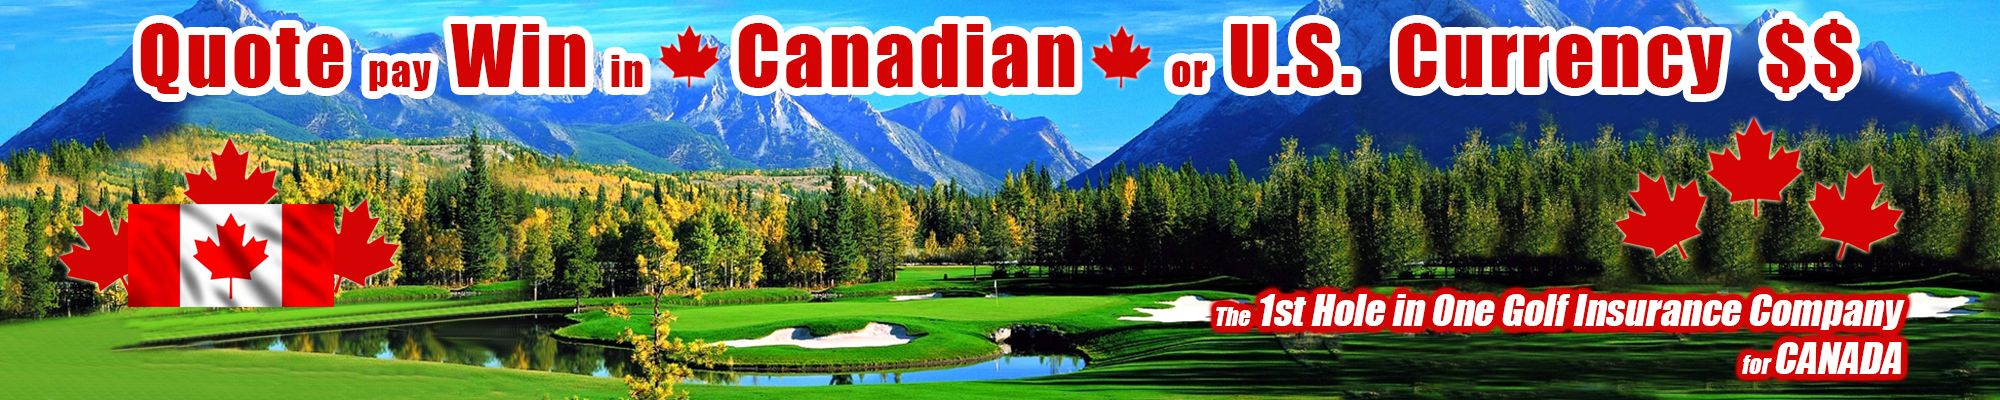 1st canada hole in one insurance company best rates in